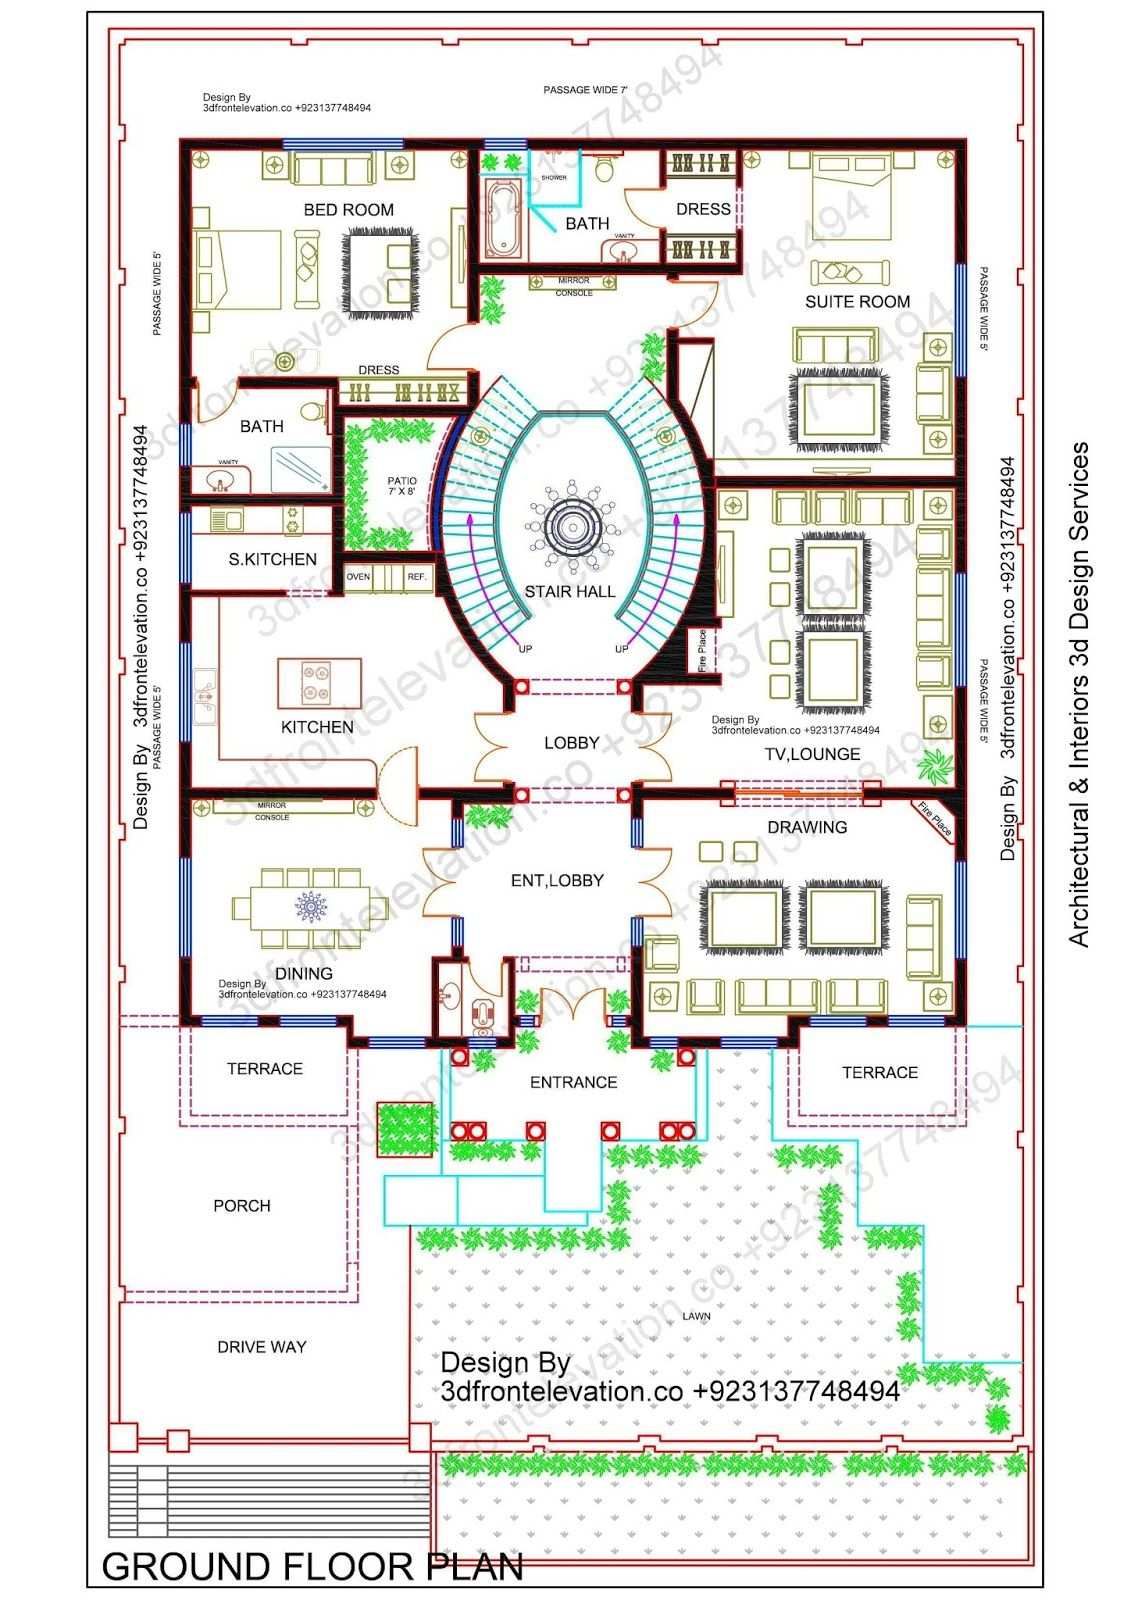 Beautiful Big Corner House Plan Design With Basement Pakistan India Saudi Arabia Afghanistan Dubai Best House Plans Floor Plan Drawing House Plans